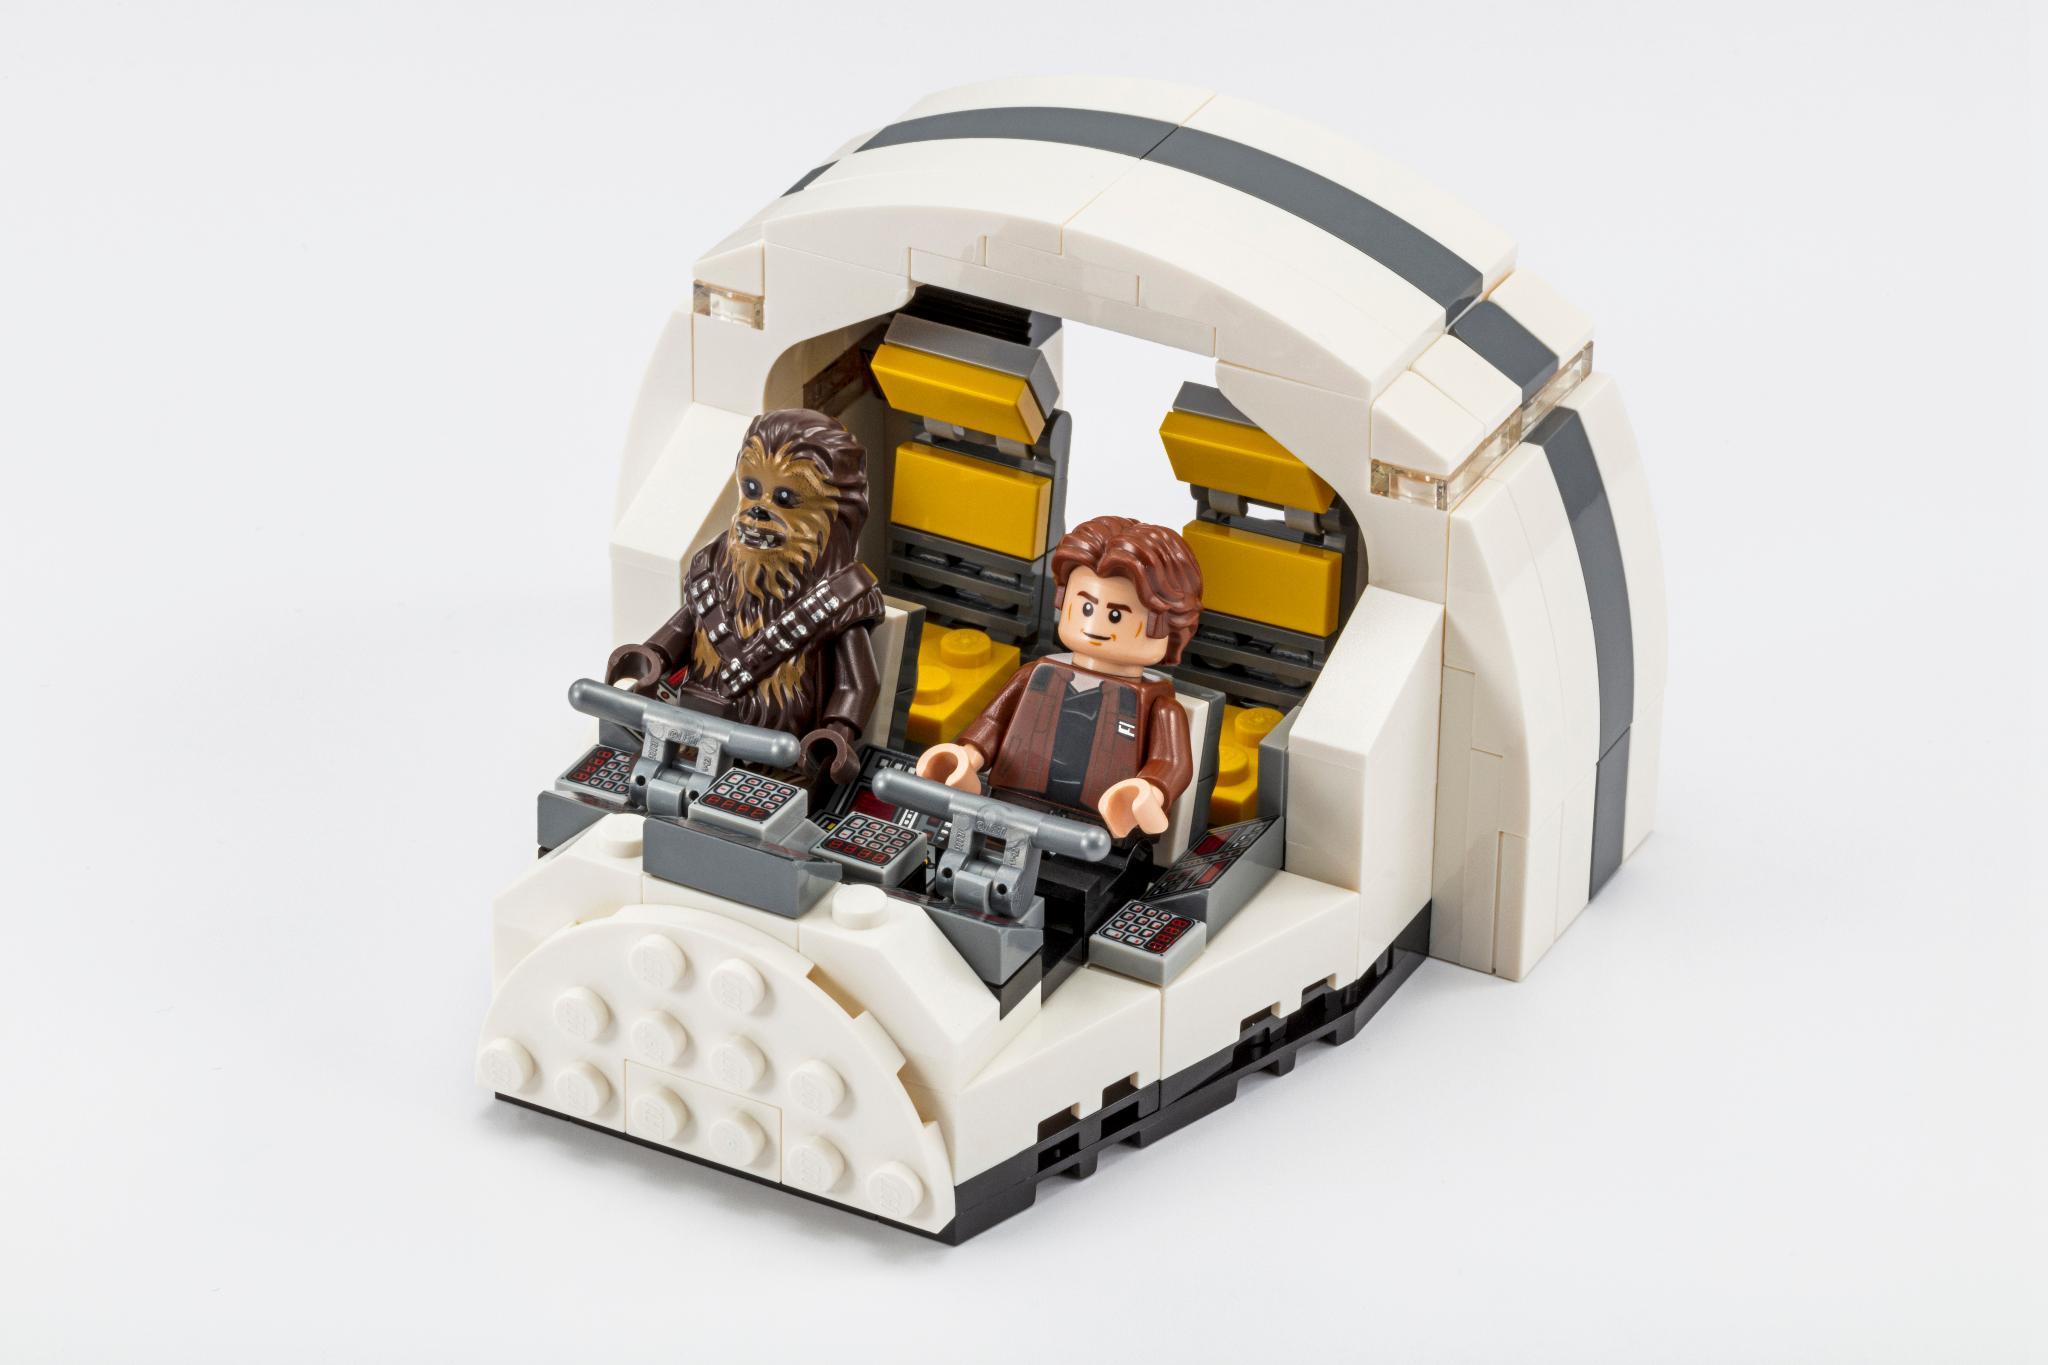 LEGO SDCC Exclusive 75512 Millennium Falcon Cockpit